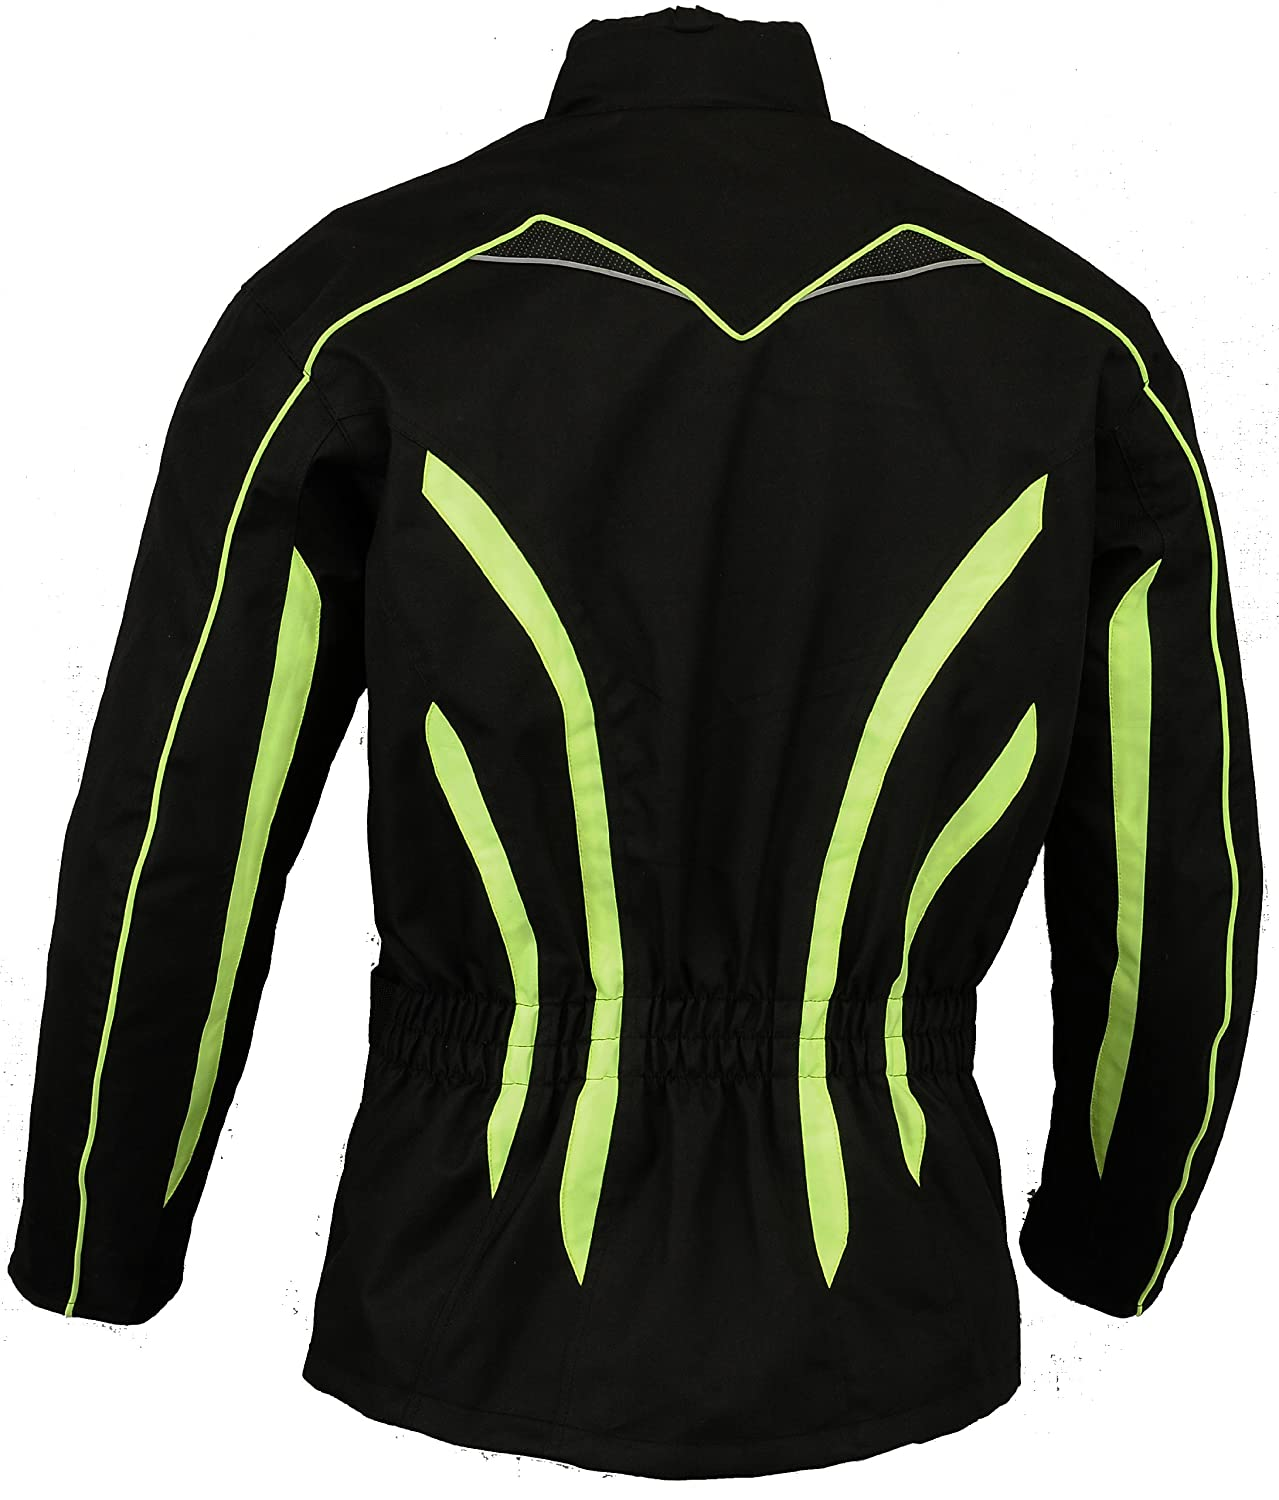 L Mens Hivis Motorbike Protective Jacket Waterproof High Visibility